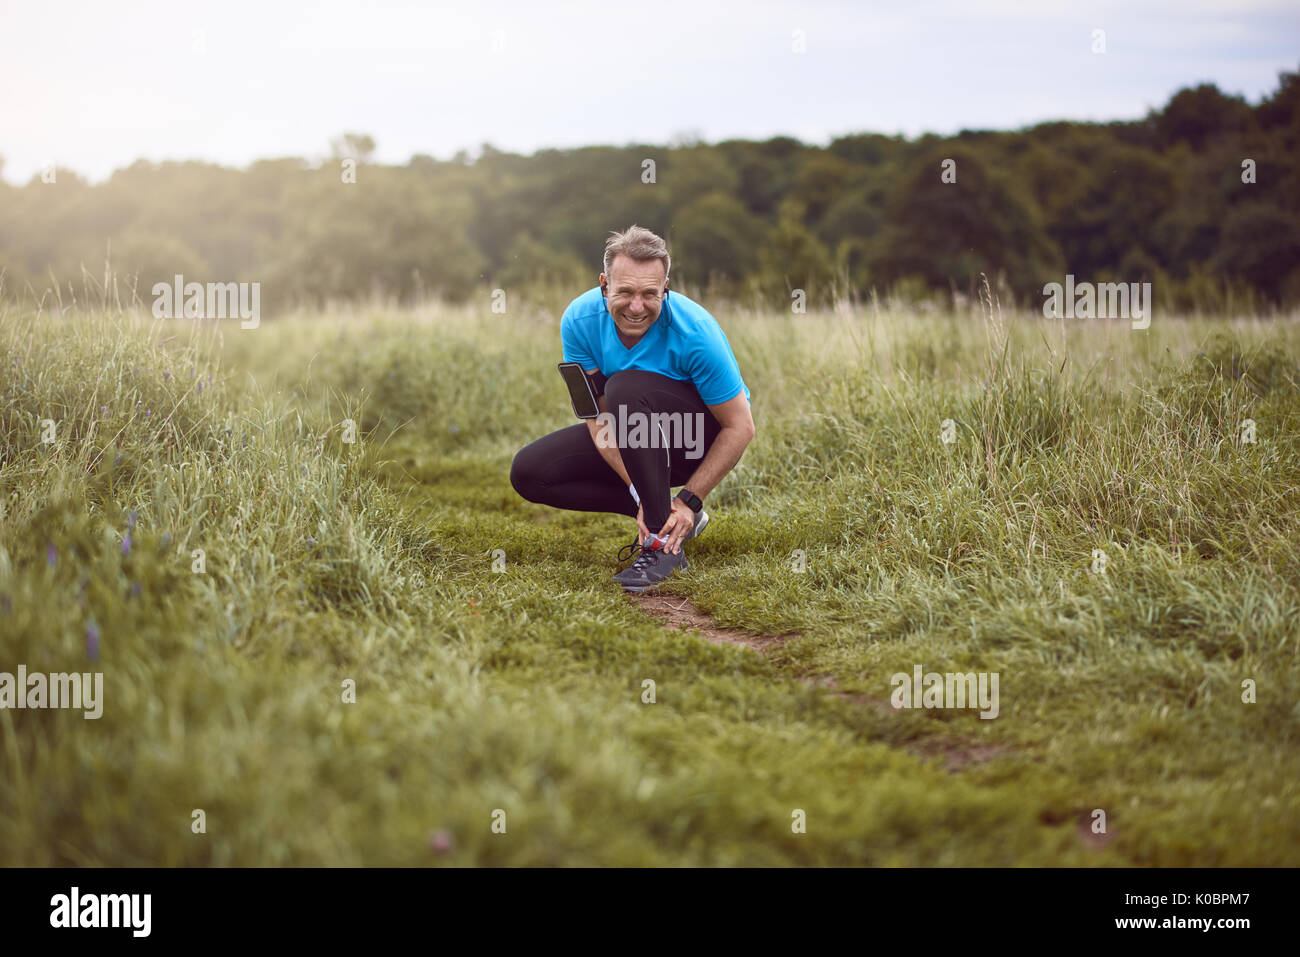 An exercising man in fit wear while running outdoors, stop to clutch an injured ankle. - Stock Image